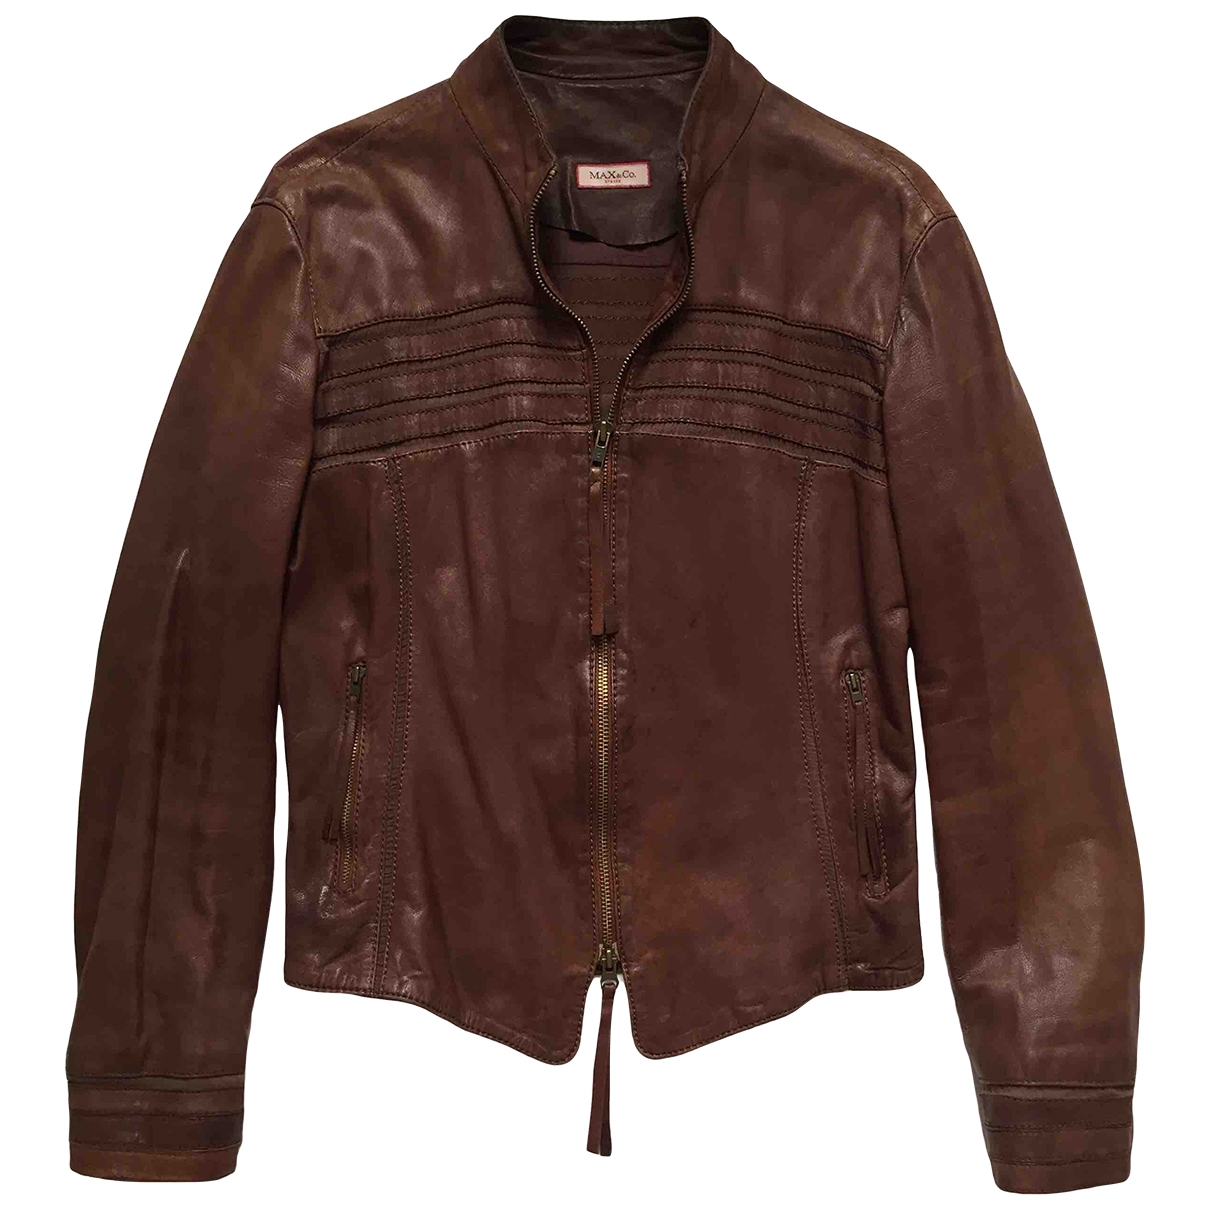 Max & Co \N Jacke in  Braun Leder